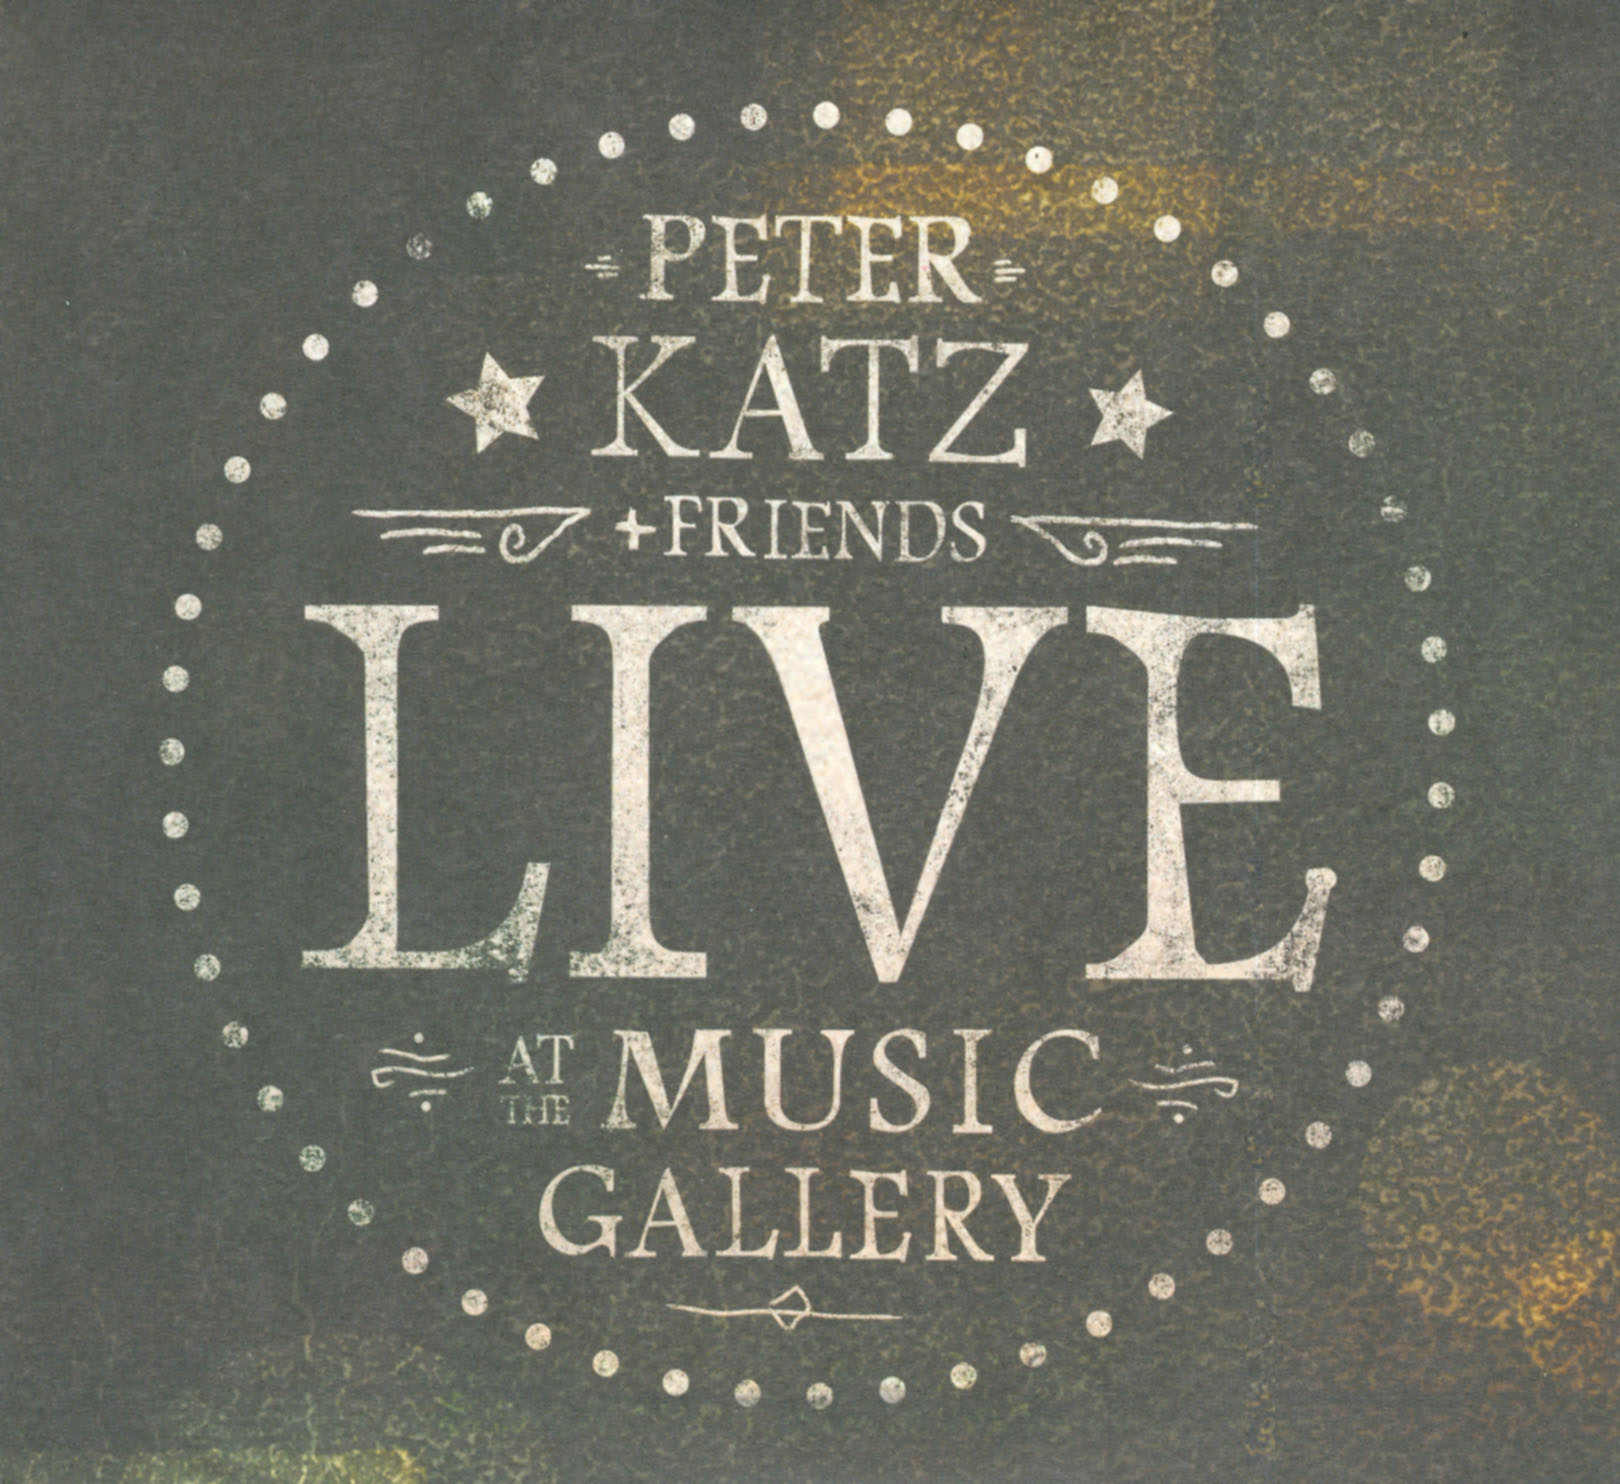 Peter Katz + Friends: Live at the Music Gallery